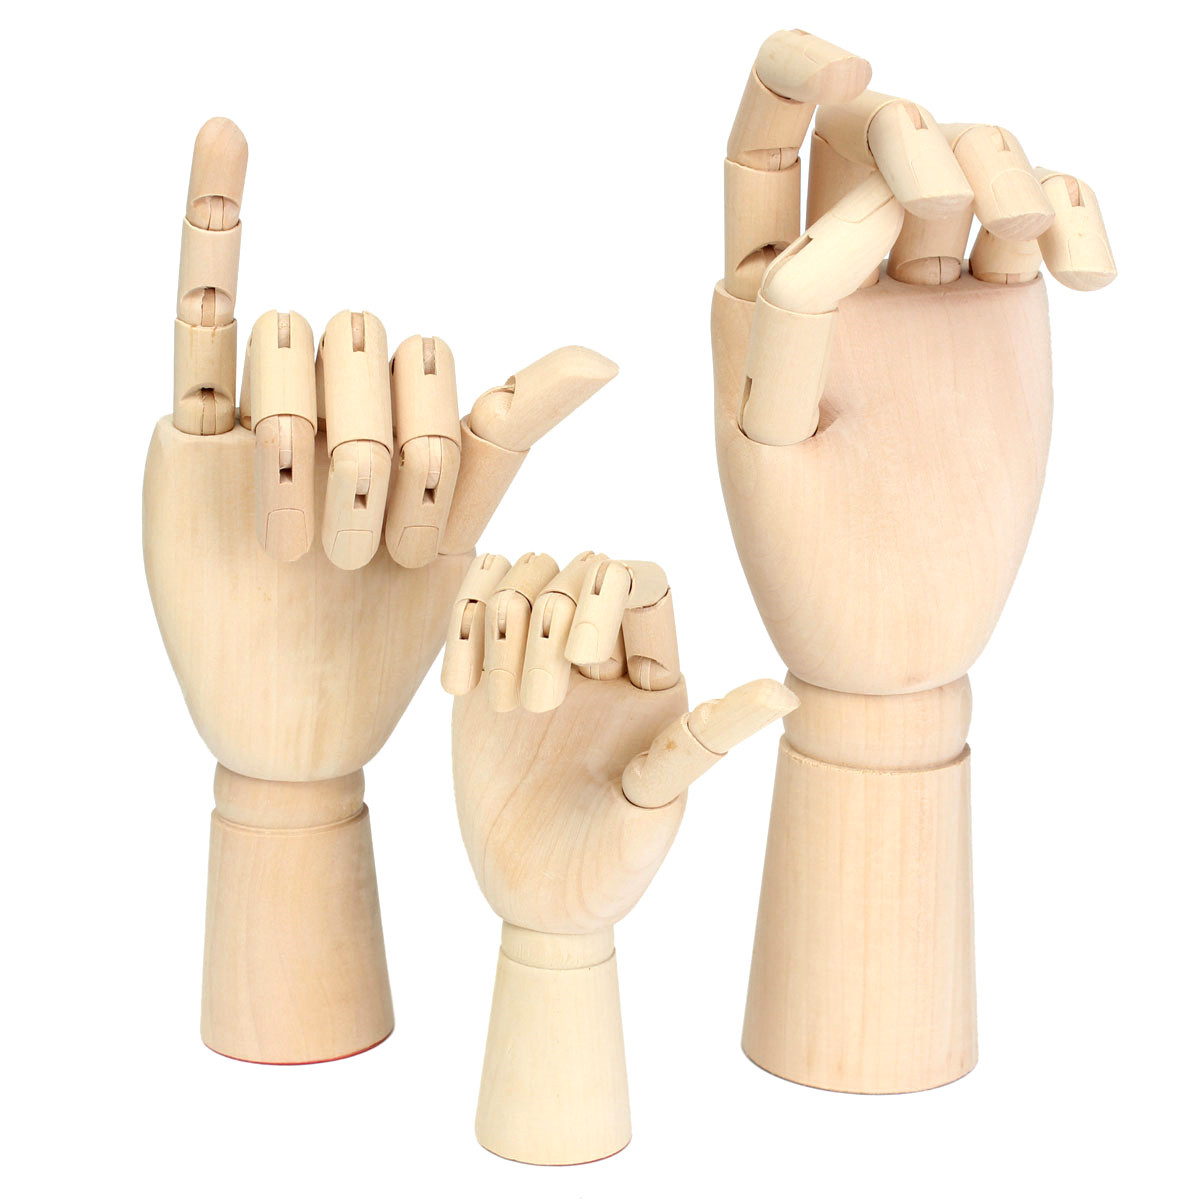 Wooden Artist Articulated Right Hand Art Model SKETCH Flexible Decoration